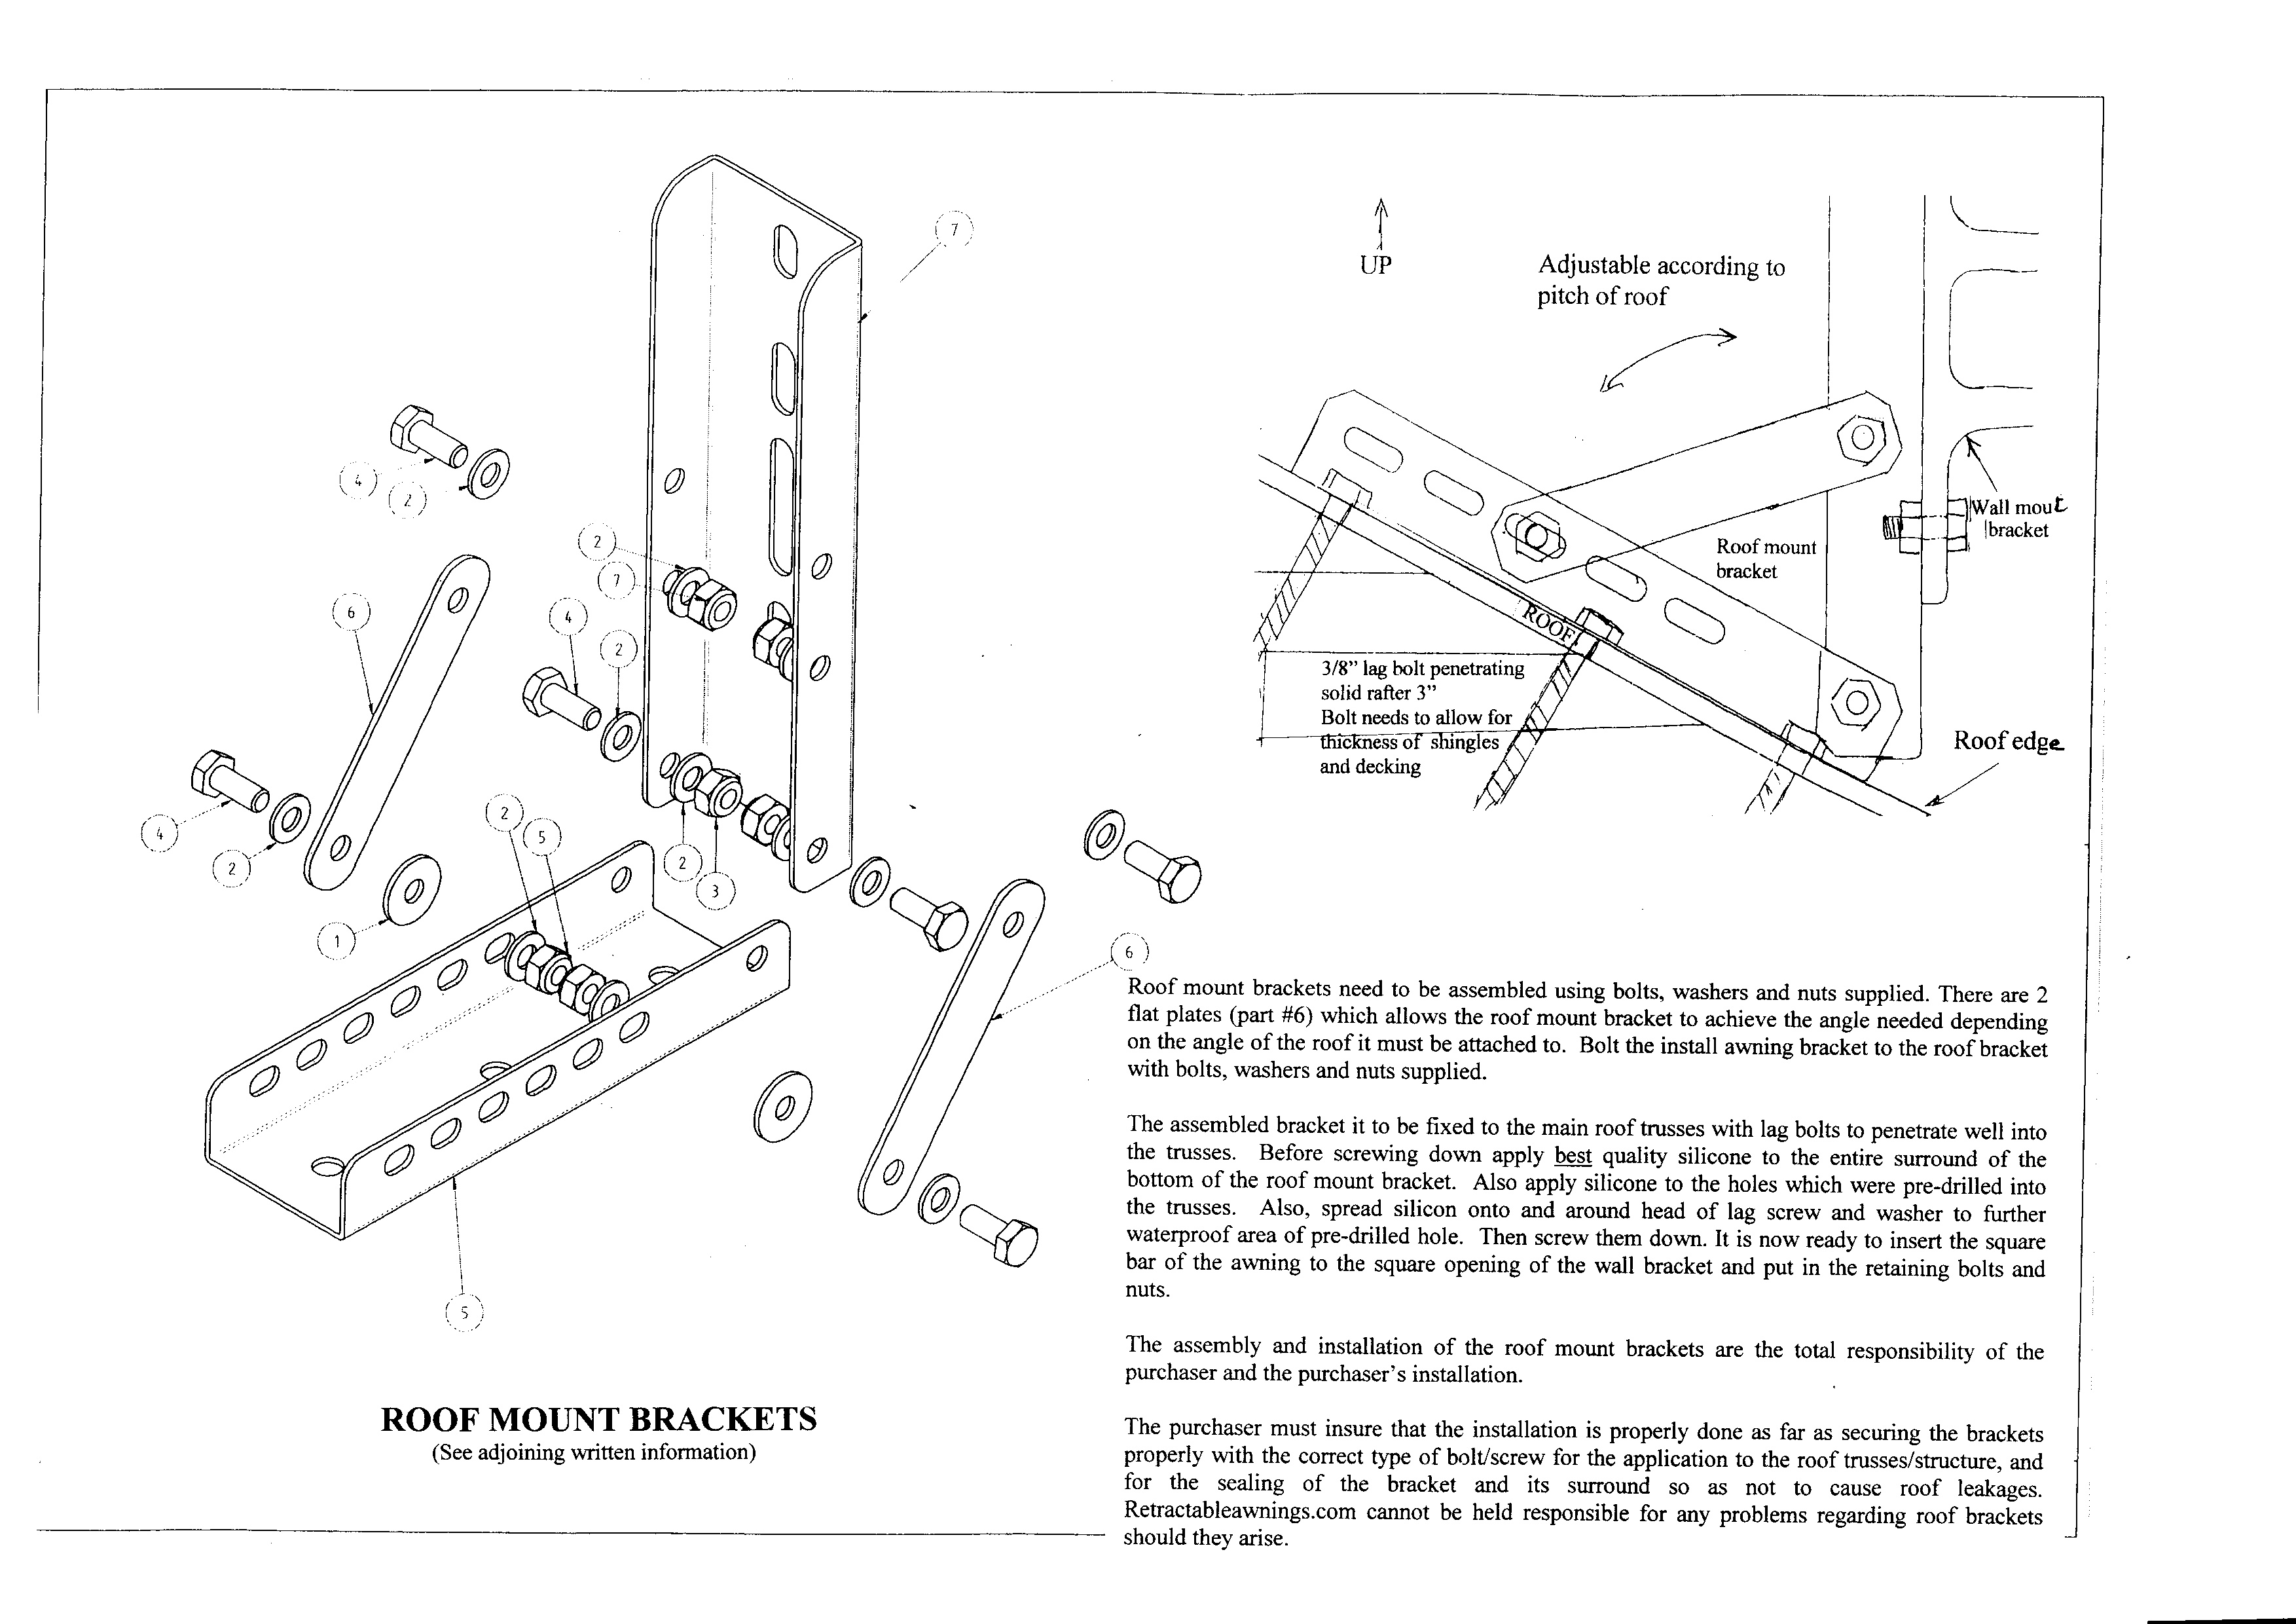 Roof Mount Bracket Assembly Instructions